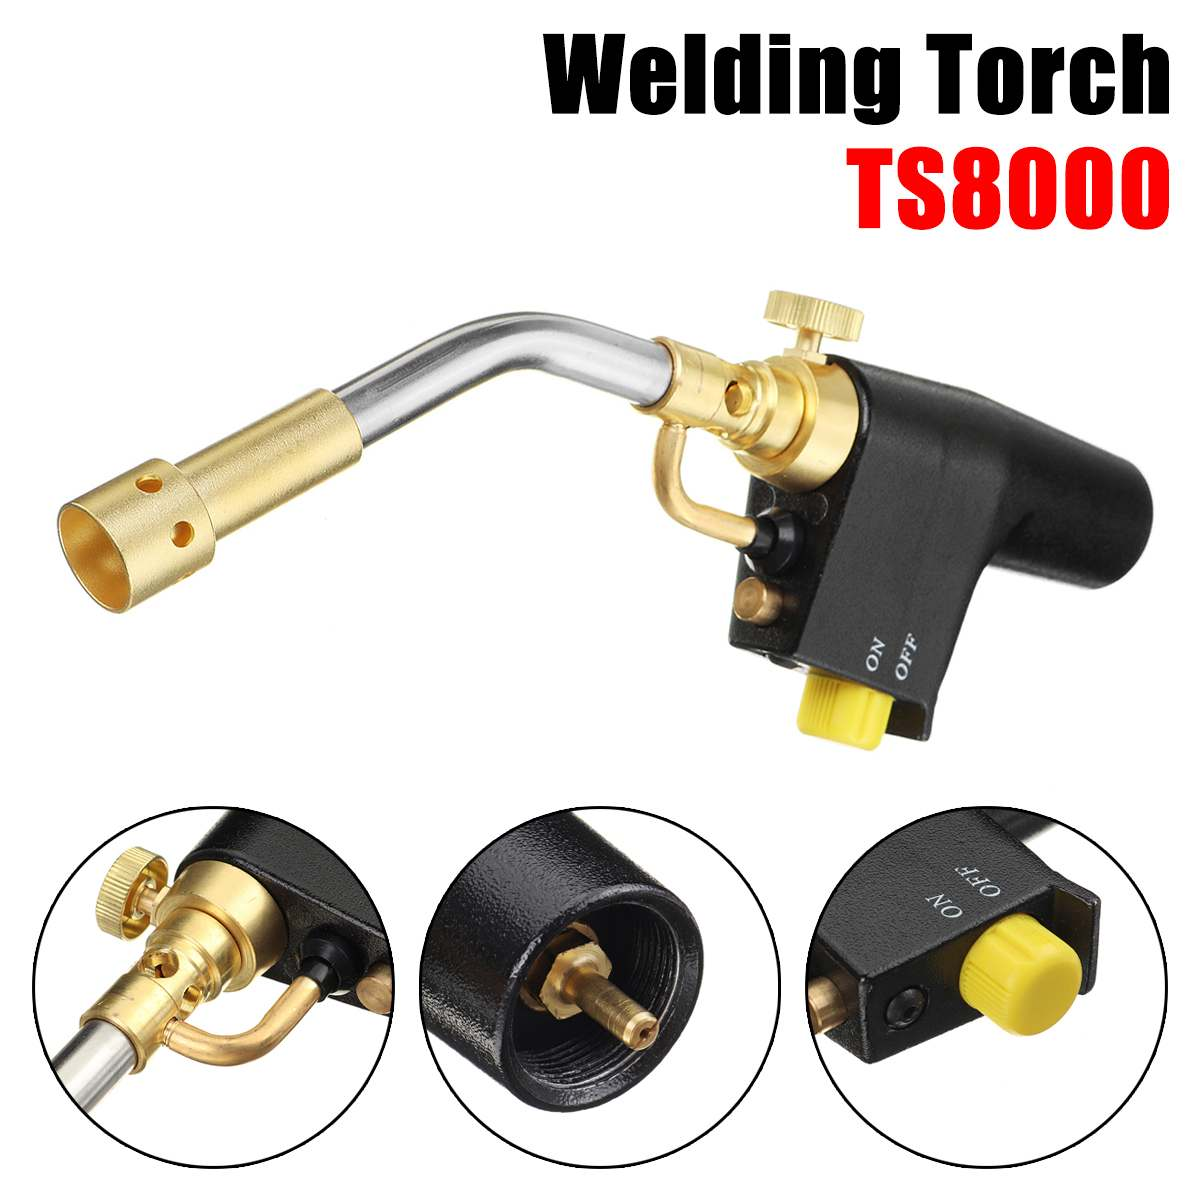 TS8500 Bernzomatic Style Blow Torch Kit Brazing Soldering Mapp Gas Map TS8500 Stainless Steel Welding Torch Camping Welding BBQ